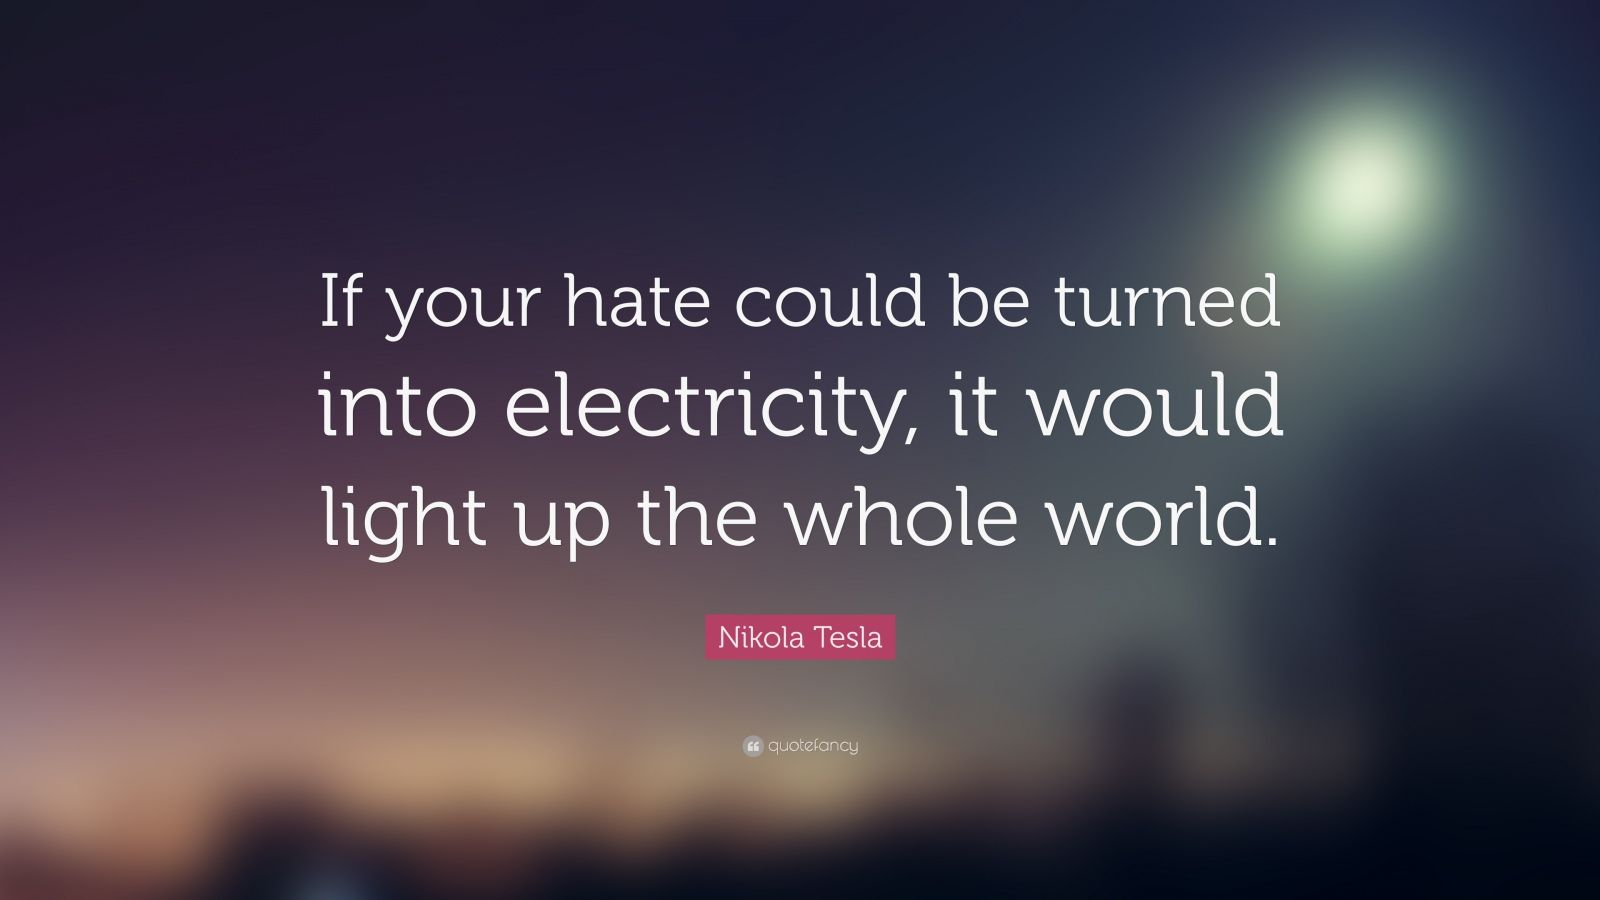 """Nikola Tesla Quote: """"If your hate could be turned into electricity, it would light up the whole world."""""""